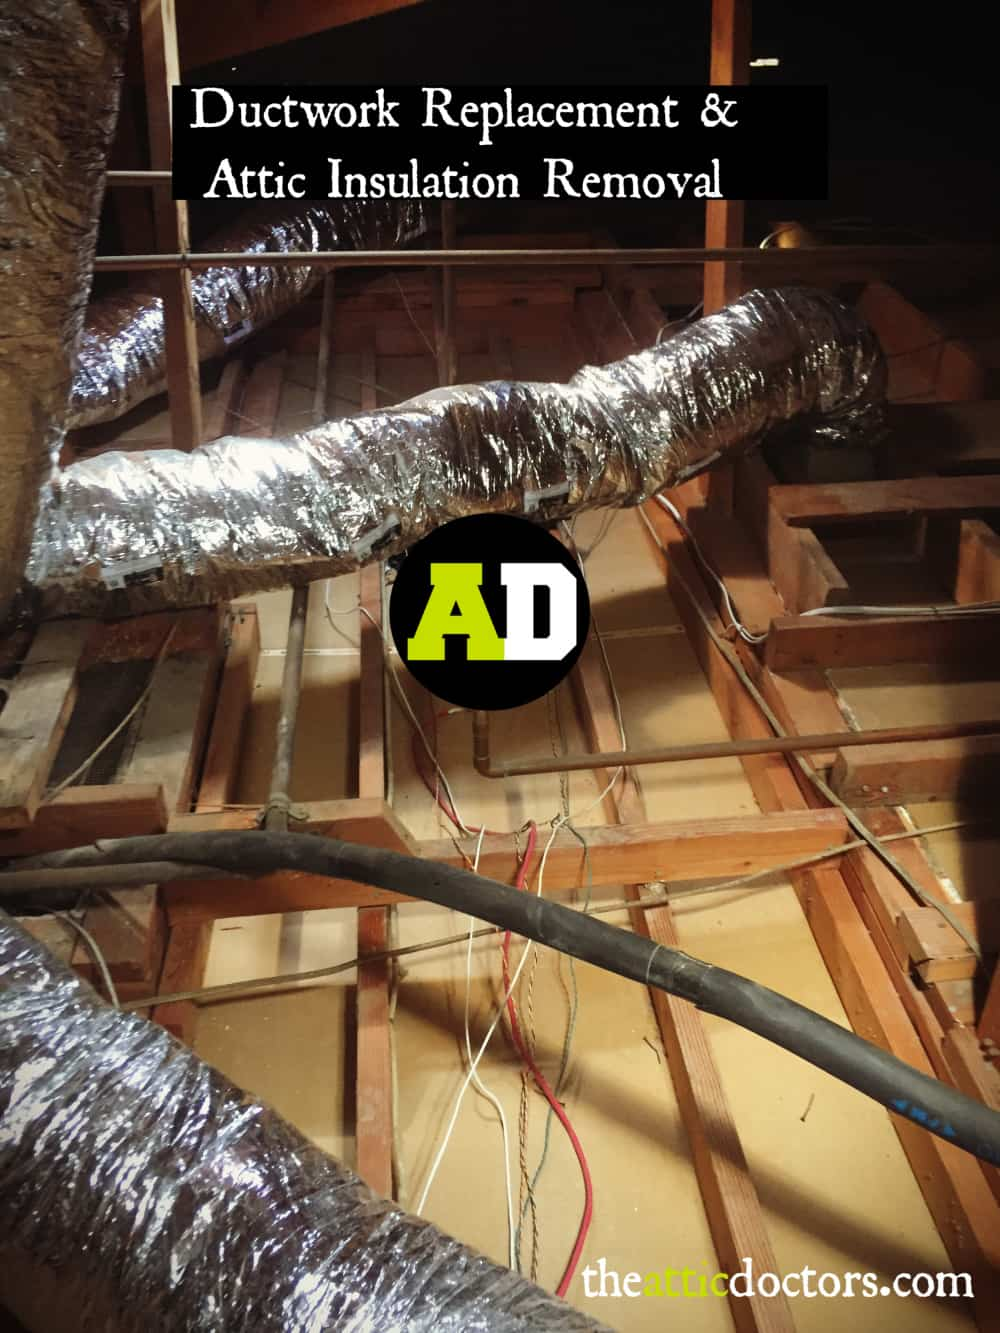 professional attic cleaning insulation removal and replacement service orange county brea